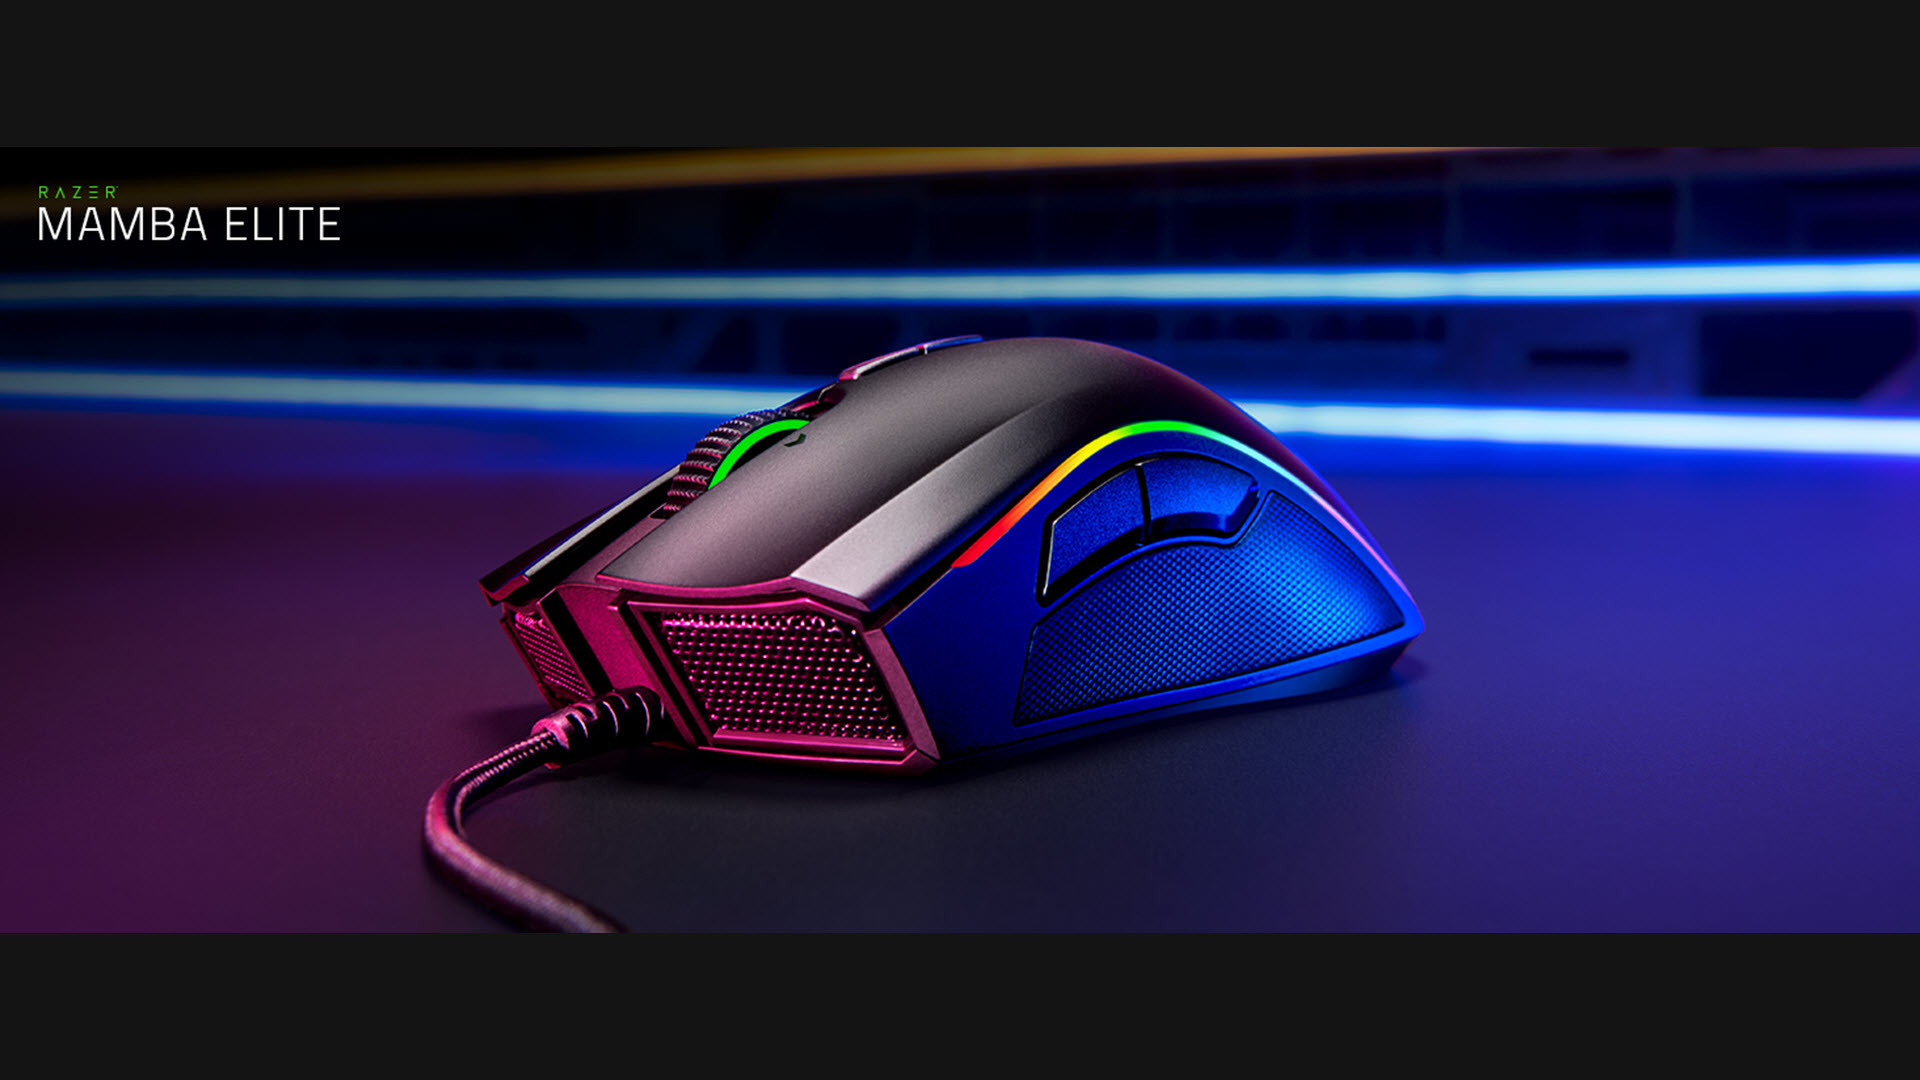 fdce4dbcec9 RAZER MAMBA ELITE: 5G True 16,000 DPI Optical Sensor - 9 Programmable  Buttons - Ergonomic Form Factory - Razer Chroma Enabled - Esports Gaming  Mouse ...